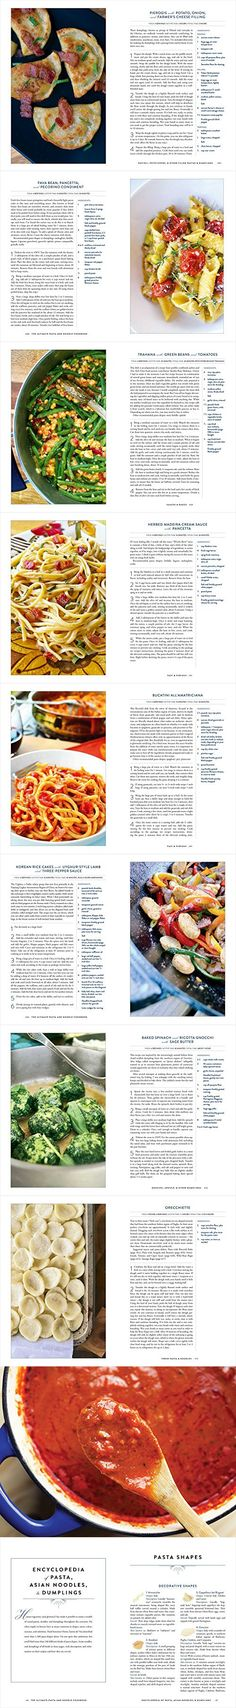 The Ultimate Pasta and Noodle Cookboo